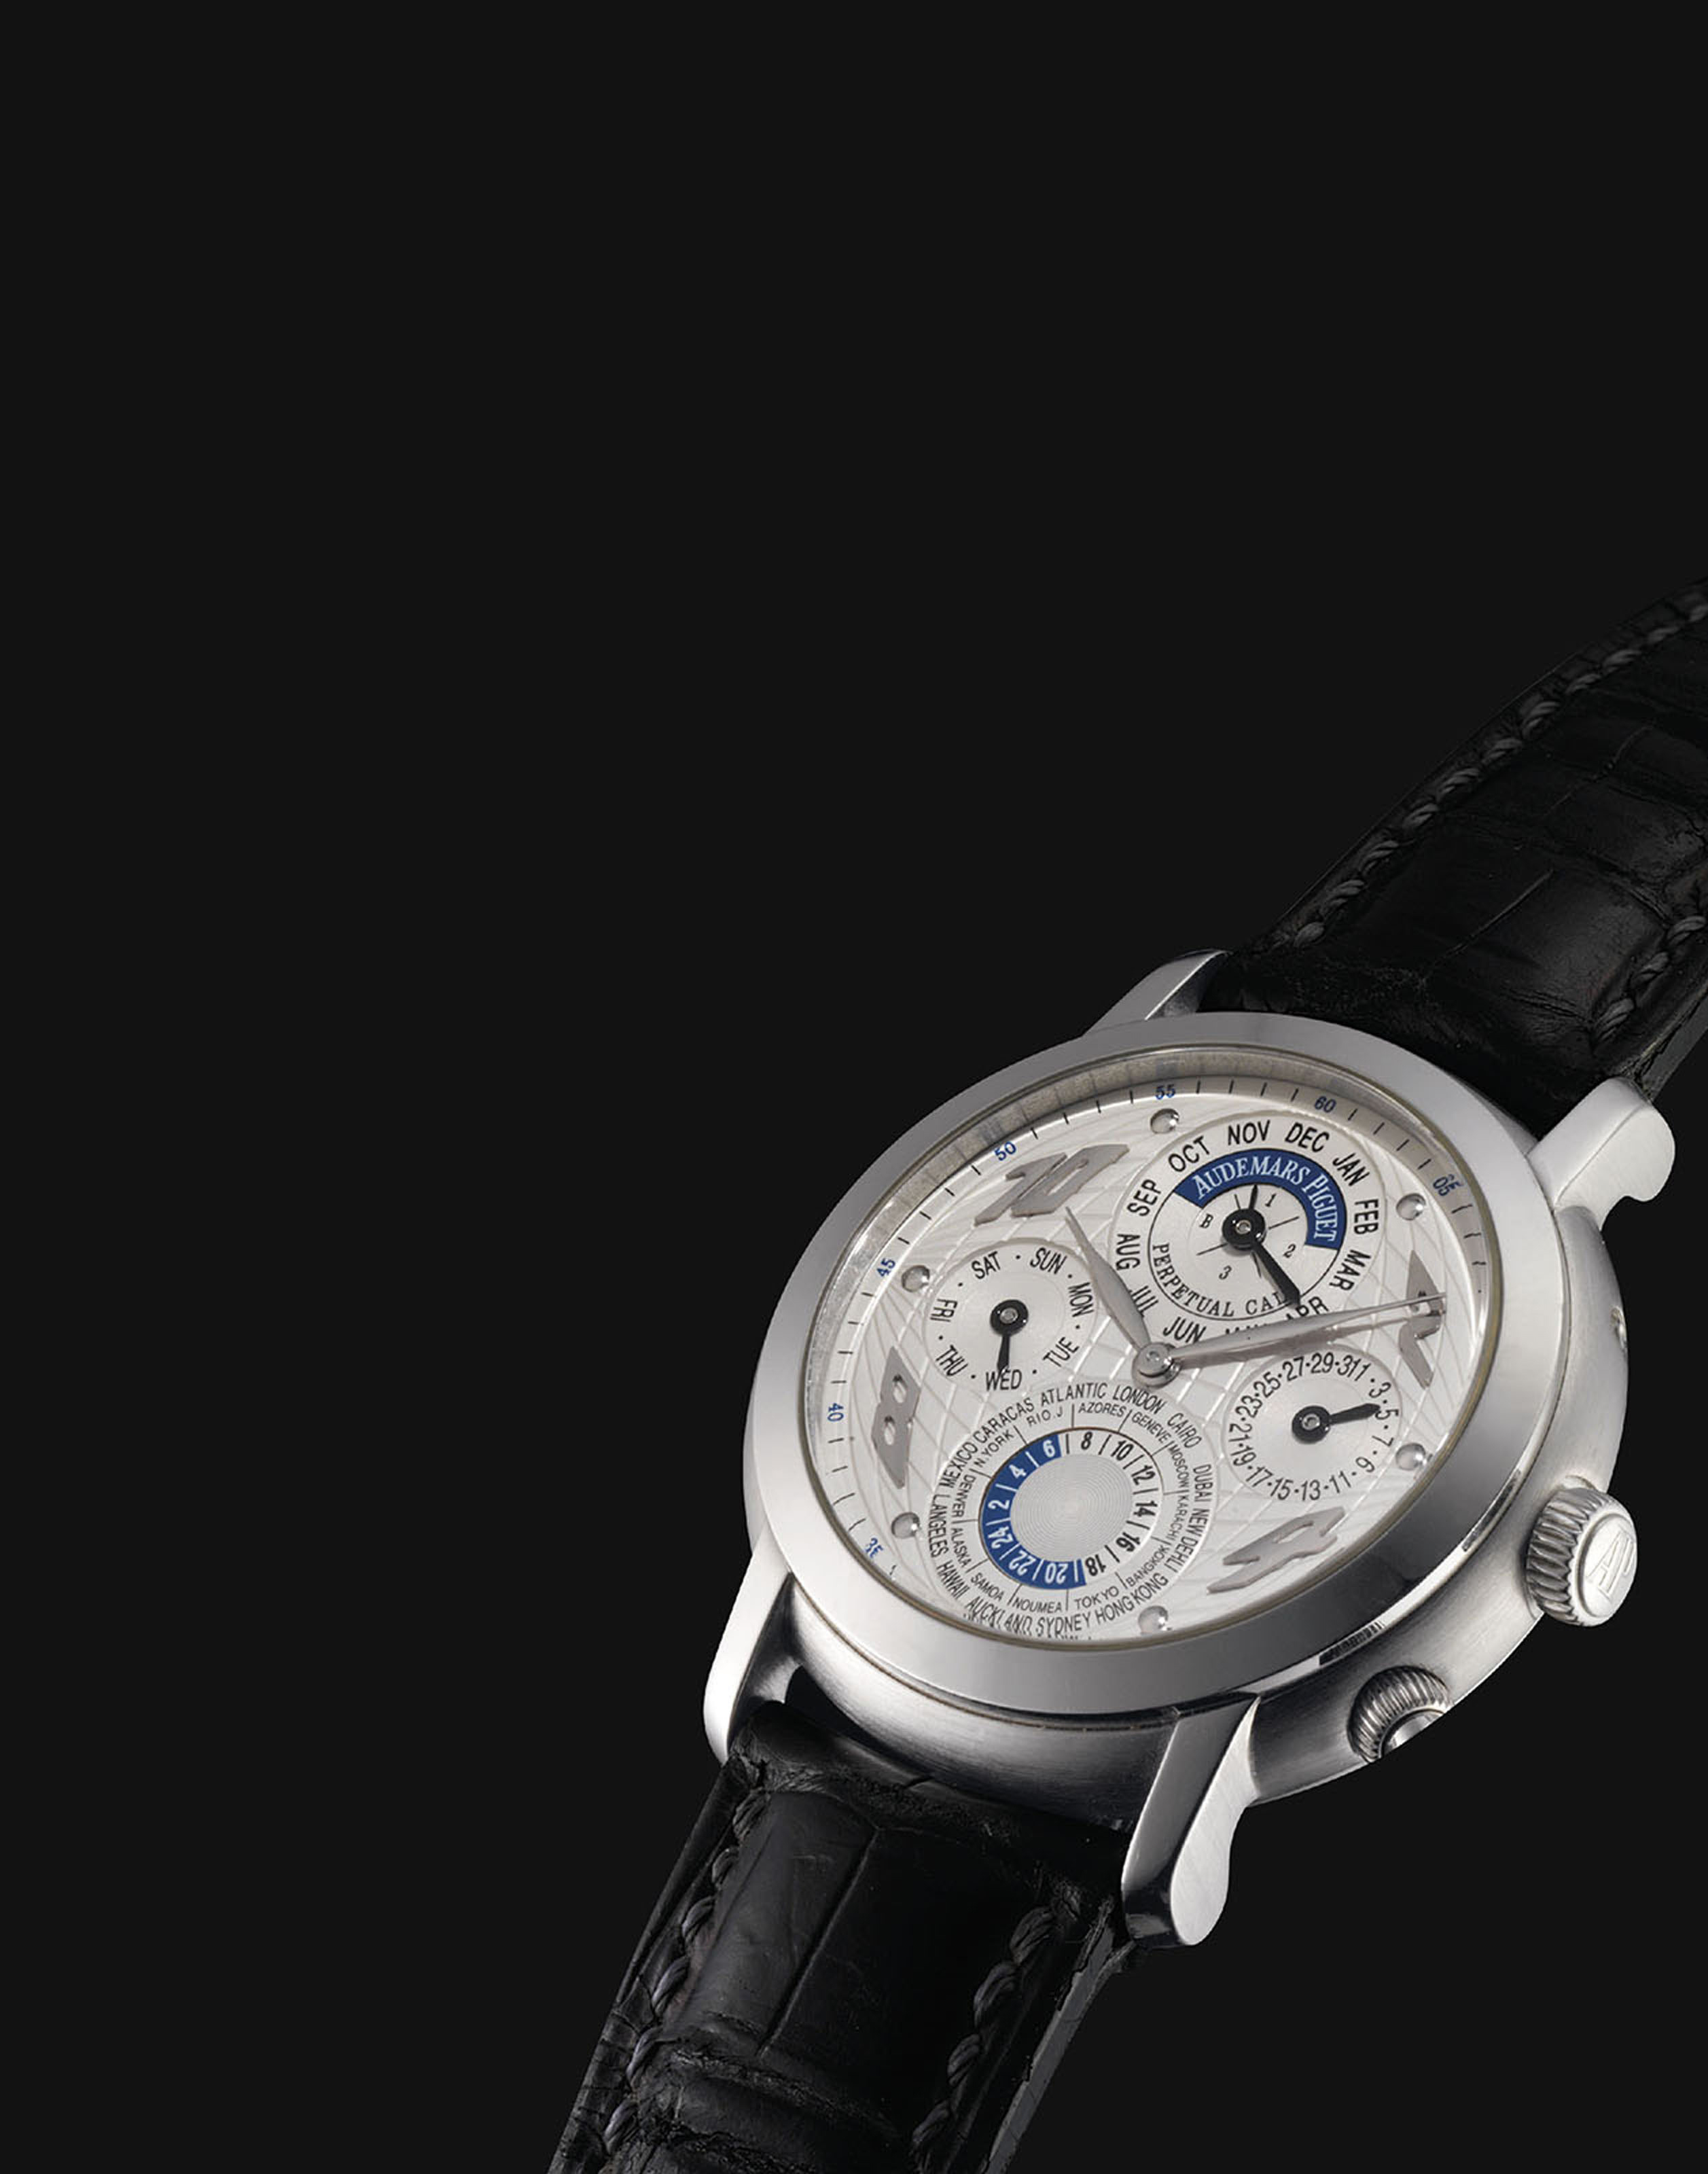 AUDEMARS PIGUET. A VERY FINE AND RARE PLATINUM AUTOMATIC PERPETUAL CALENDAR WORLD TIME WRISTWATCH WITH LEAP YEAR INDICATION